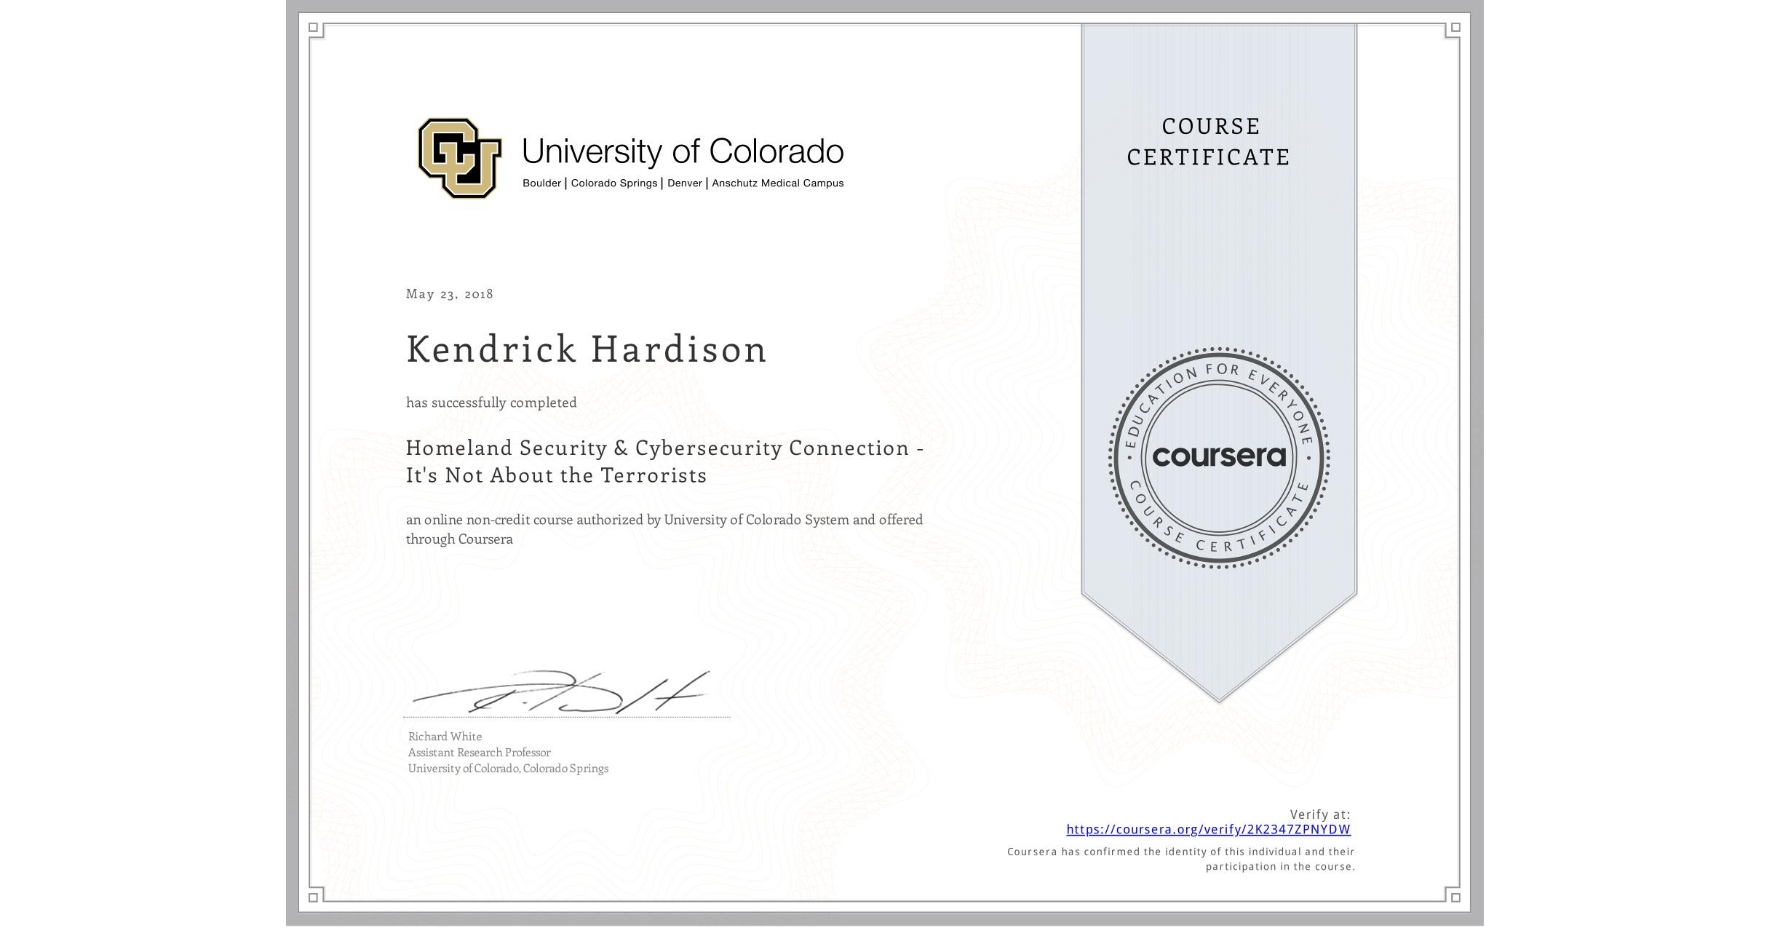 View certificate for Kendrick Hardison, Homeland Security & Cybersecurity Connection - It's Not About the Terrorists, an online non-credit course authorized by University of Colorado System and offered through Coursera